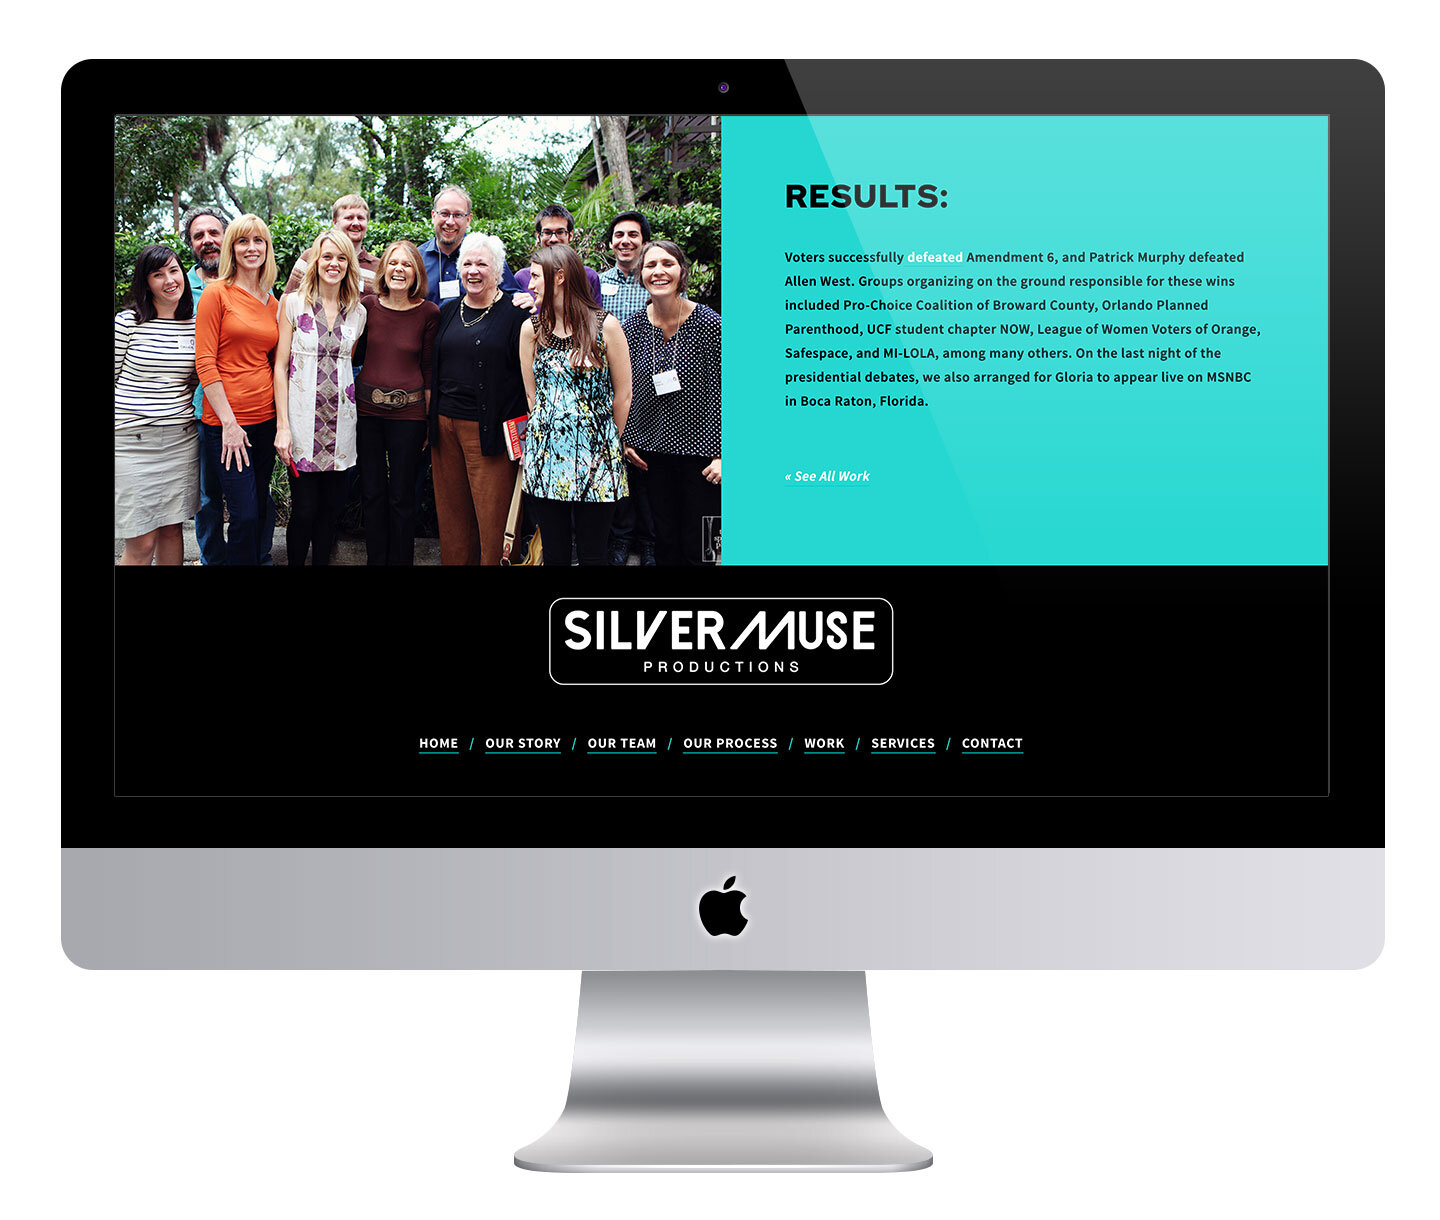 silver-muse-productions-website-design-9.jpg